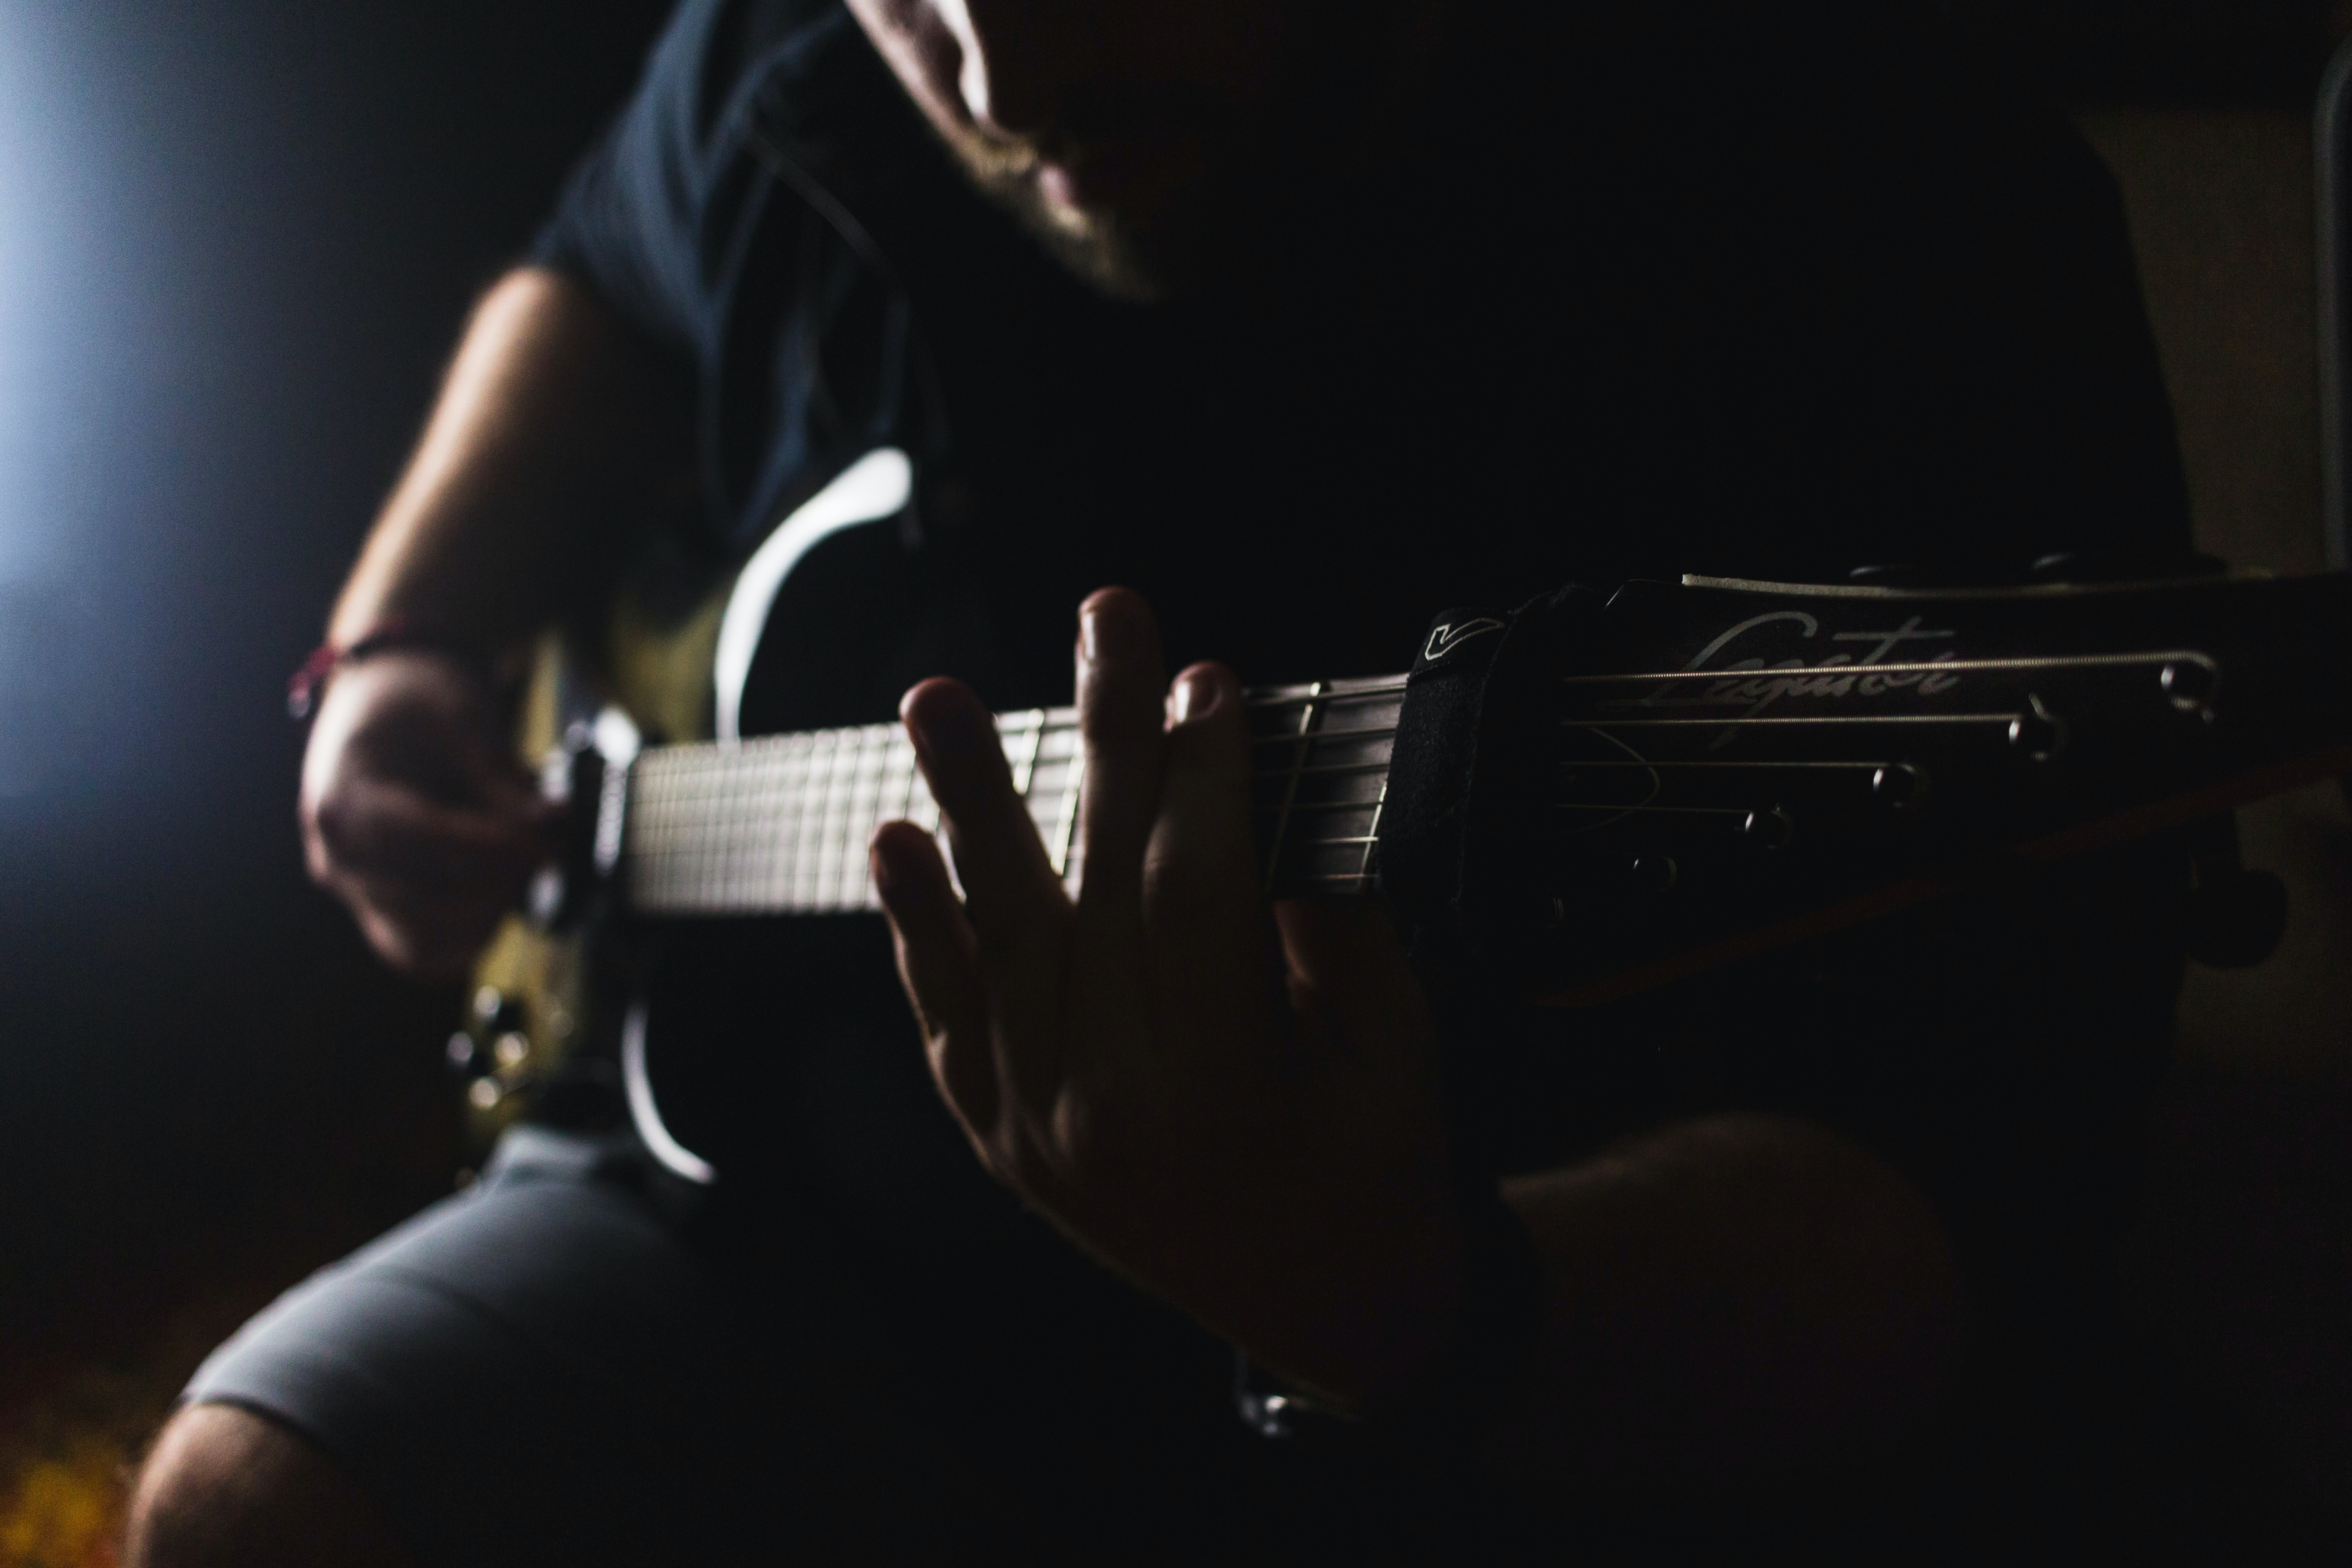 low light photography of man playing guitar